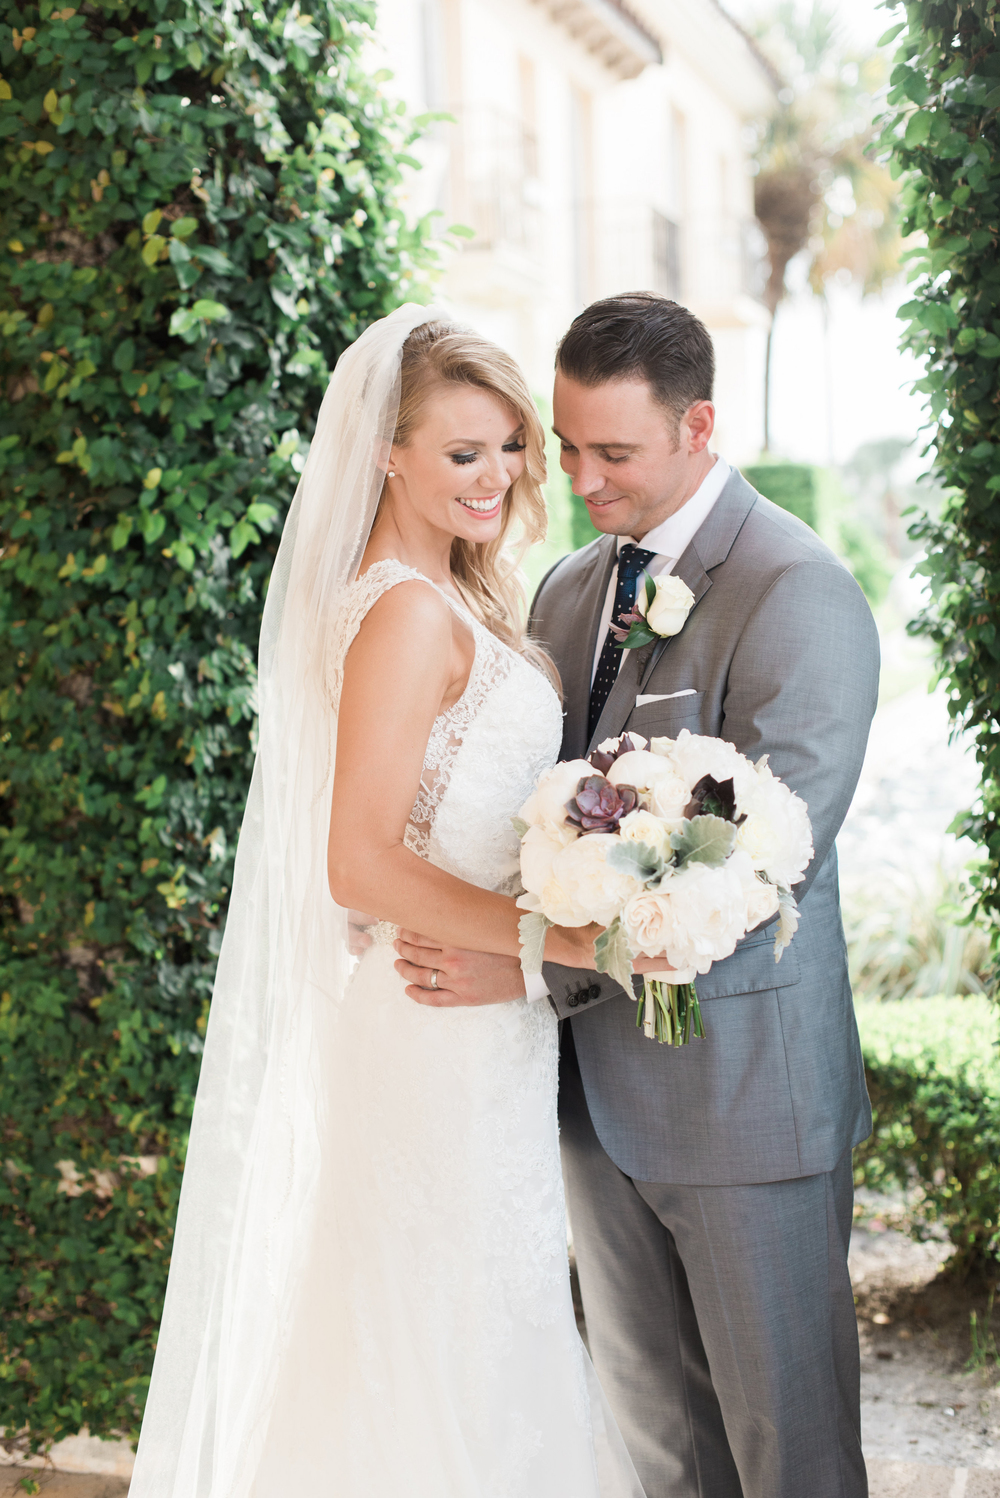 Photography : Starfish Studios | Venue : The Addison, Boca Raton, FL. | See more at: http://www.starfishstudiosfl.com